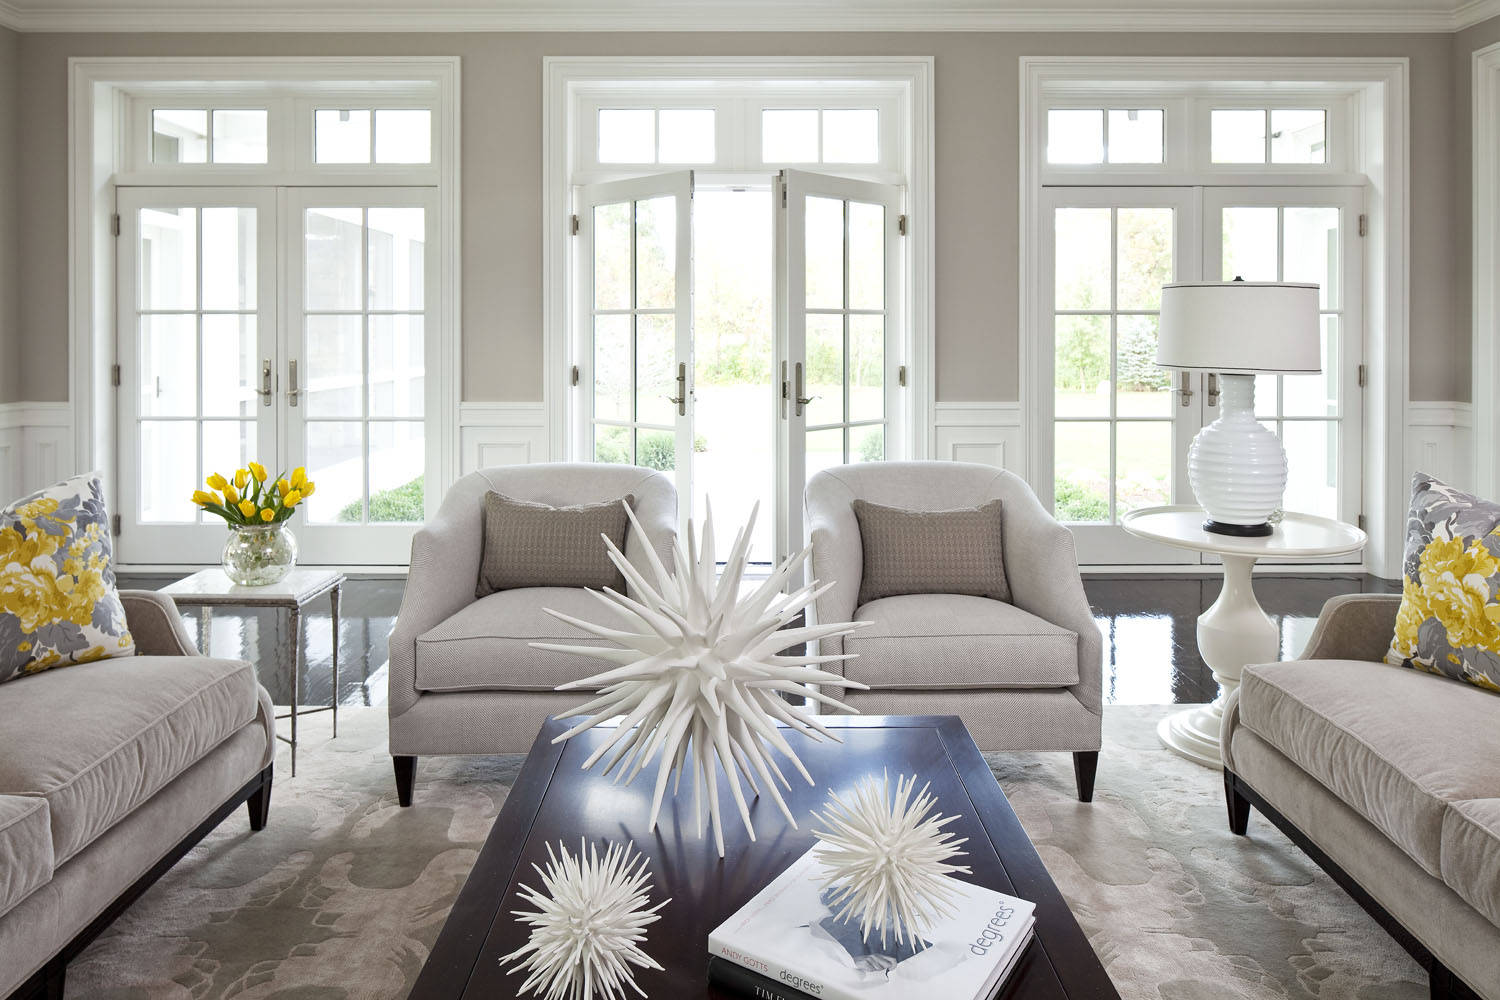 Two Tone Paint Living Room Ideas & Photos | Houzz